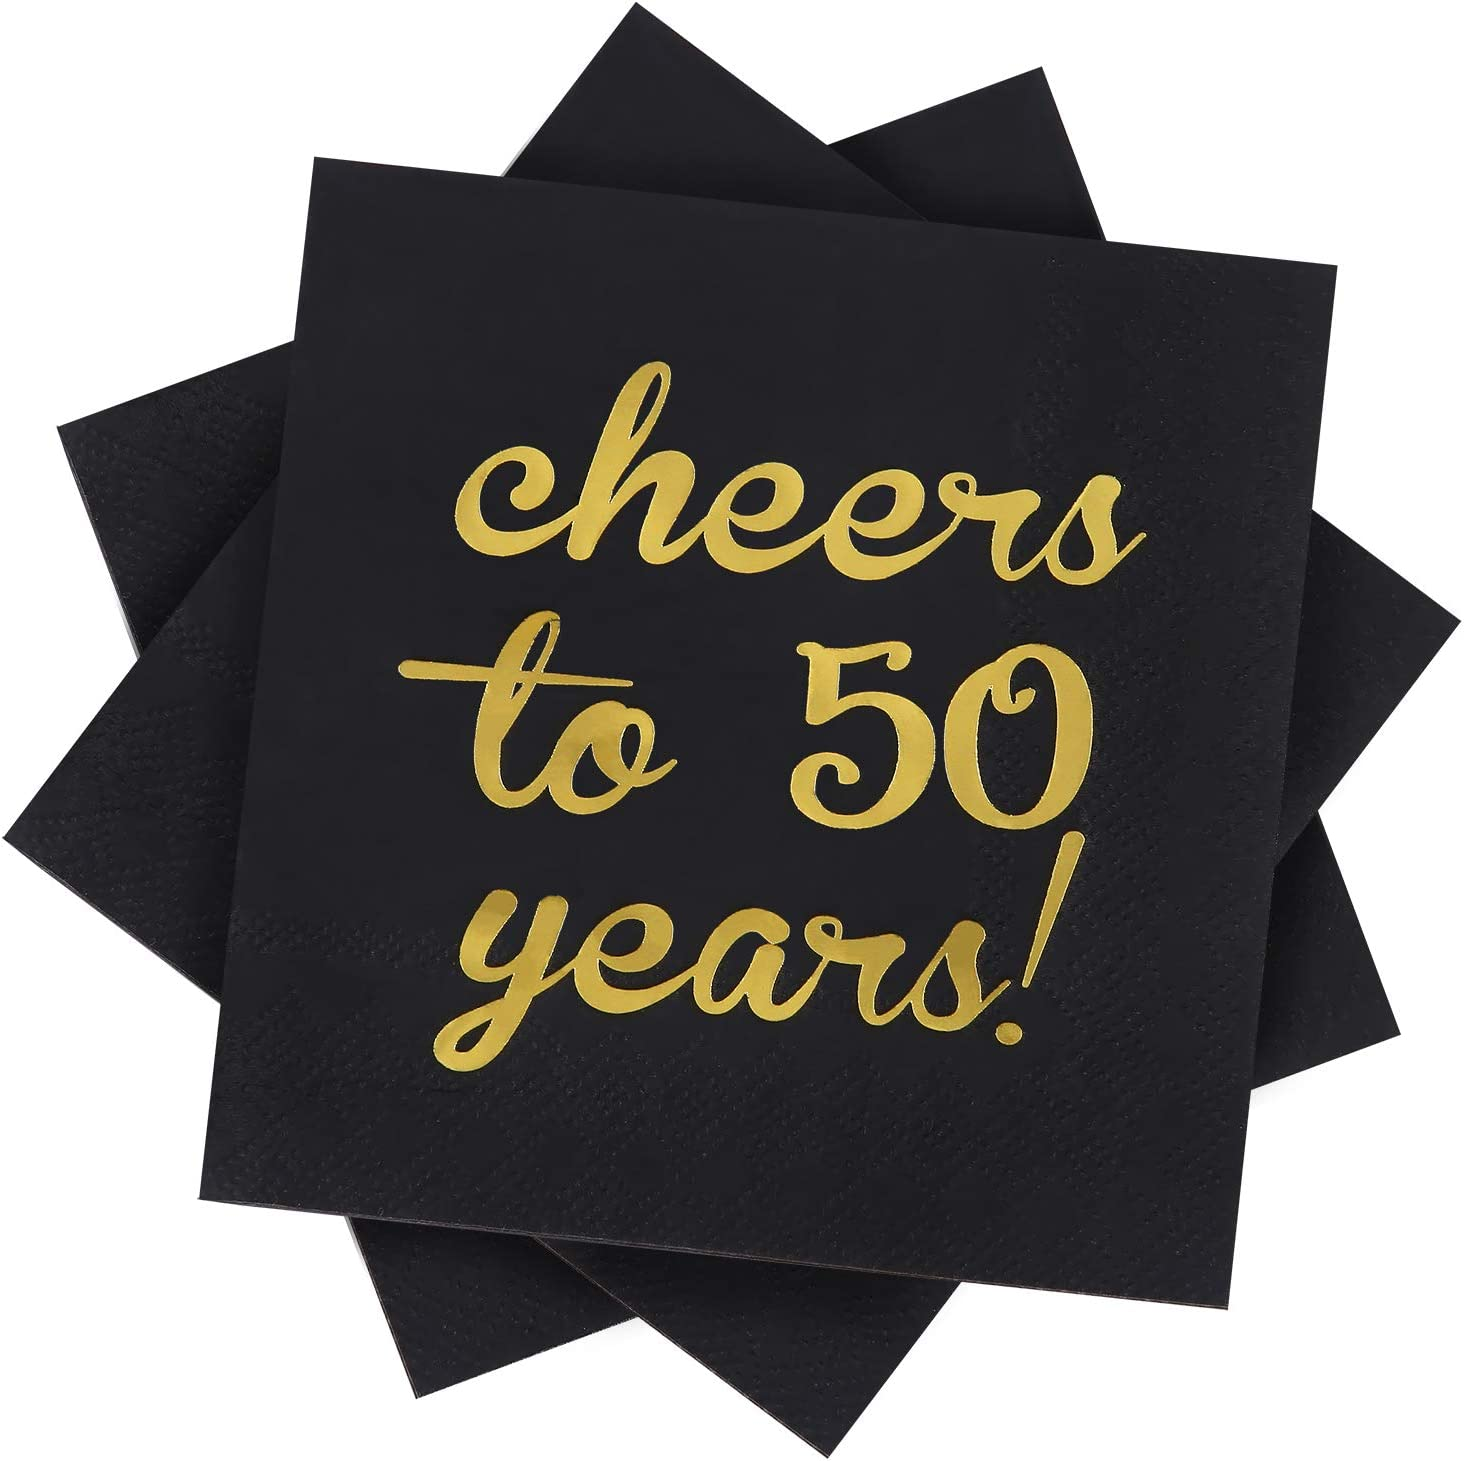 Elcoho 60 Pack Cocktail Napkins 50th Birthday Decorations Luncheon Napkins for Birthday, Anniversary Party Supplies, Cheers to 50 Years Design, 2 Layers, 5 by 5 Inches (Cheers to 50 Years)